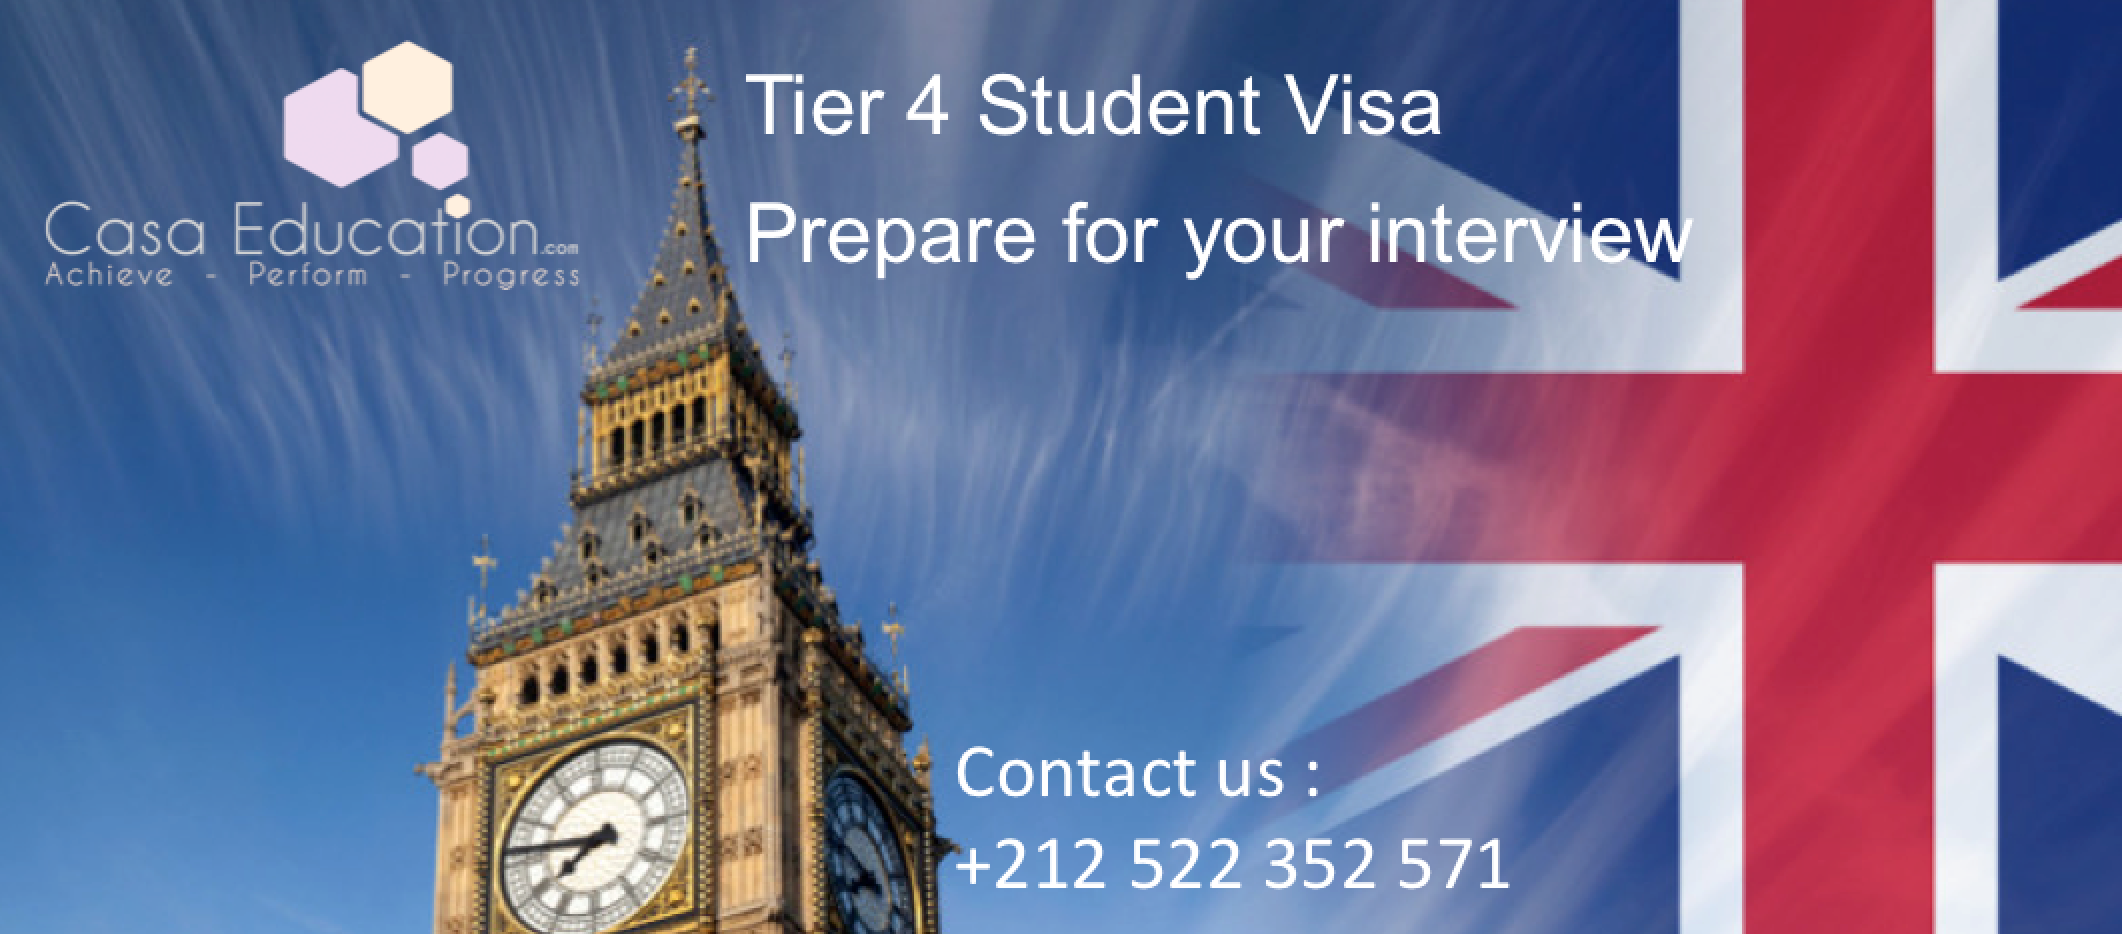 Visa Interview for Tier 4 visa - CasaEducation